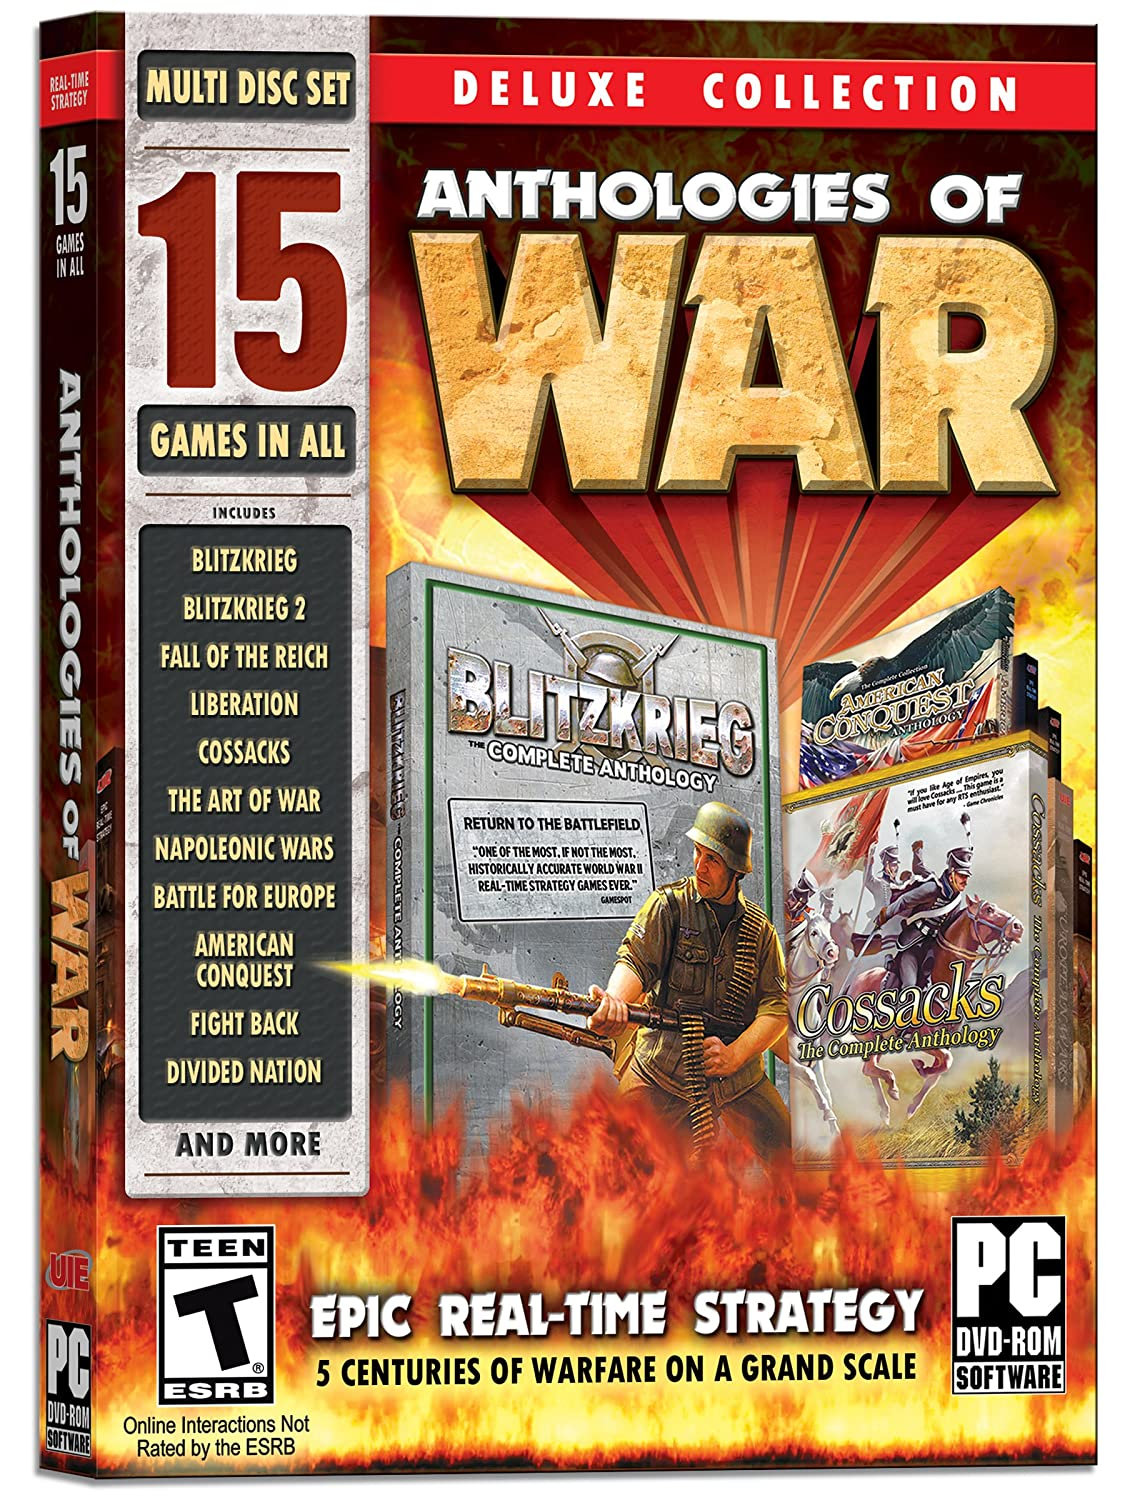 Amazon.com: Anthologies of War: Deluxe Edition - 15 Games in All: Software